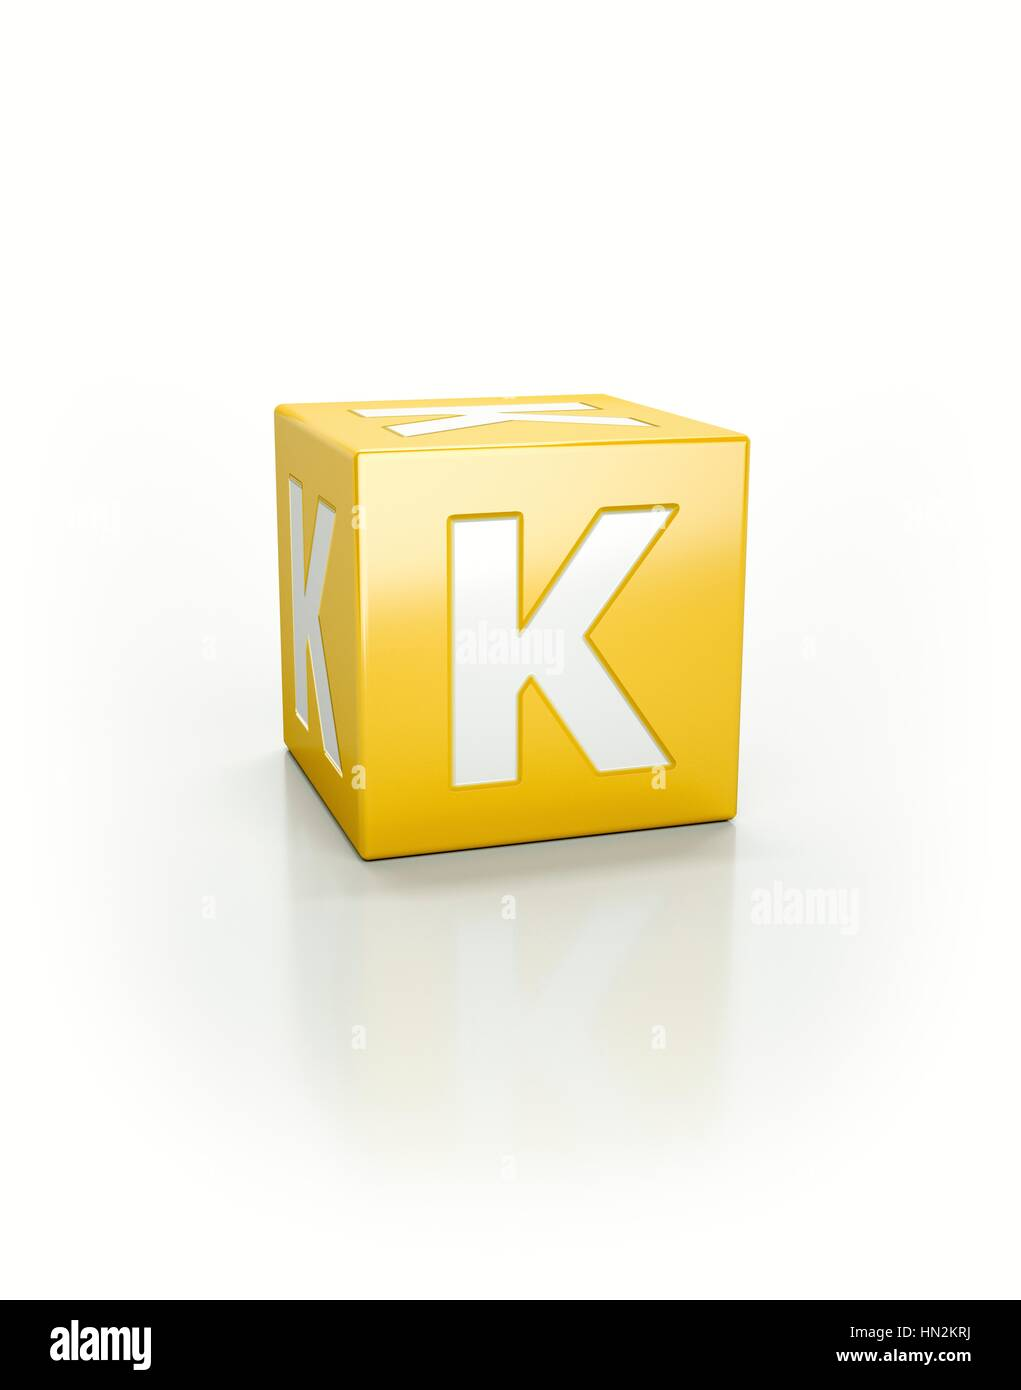 Yellow cube with letter K. - Stock Image